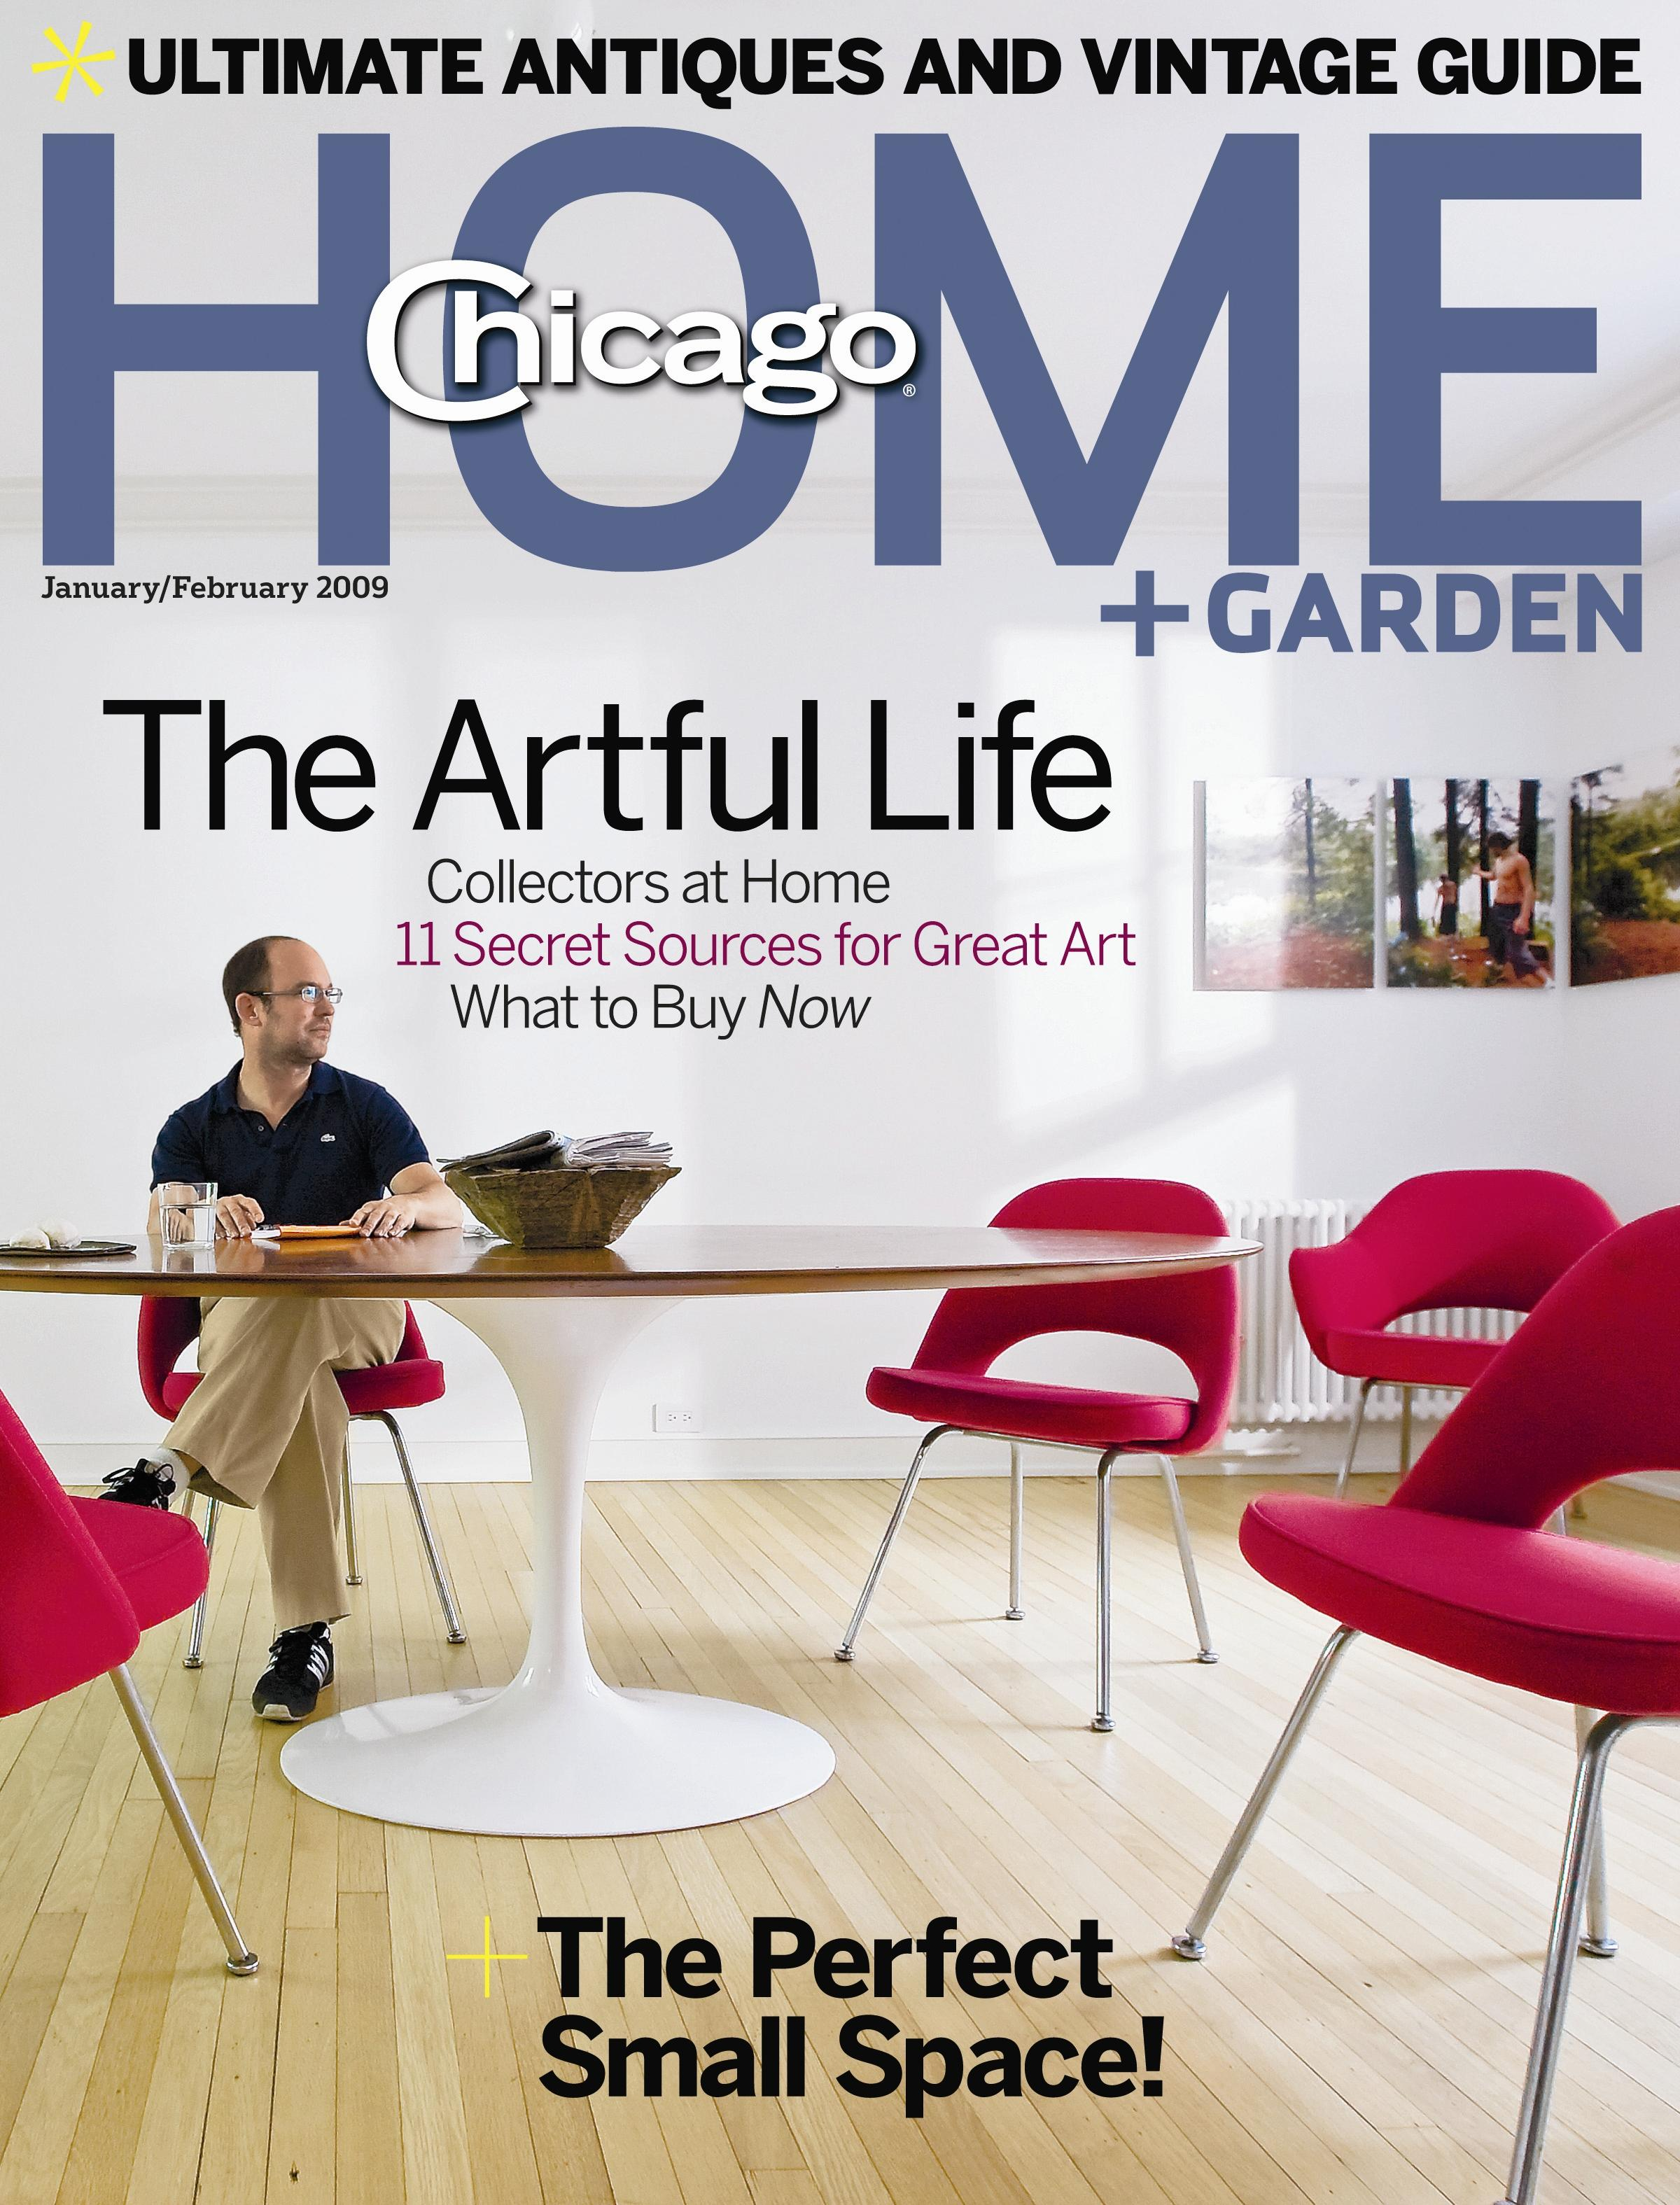 More Details about Chicago Home & Garden Magazine